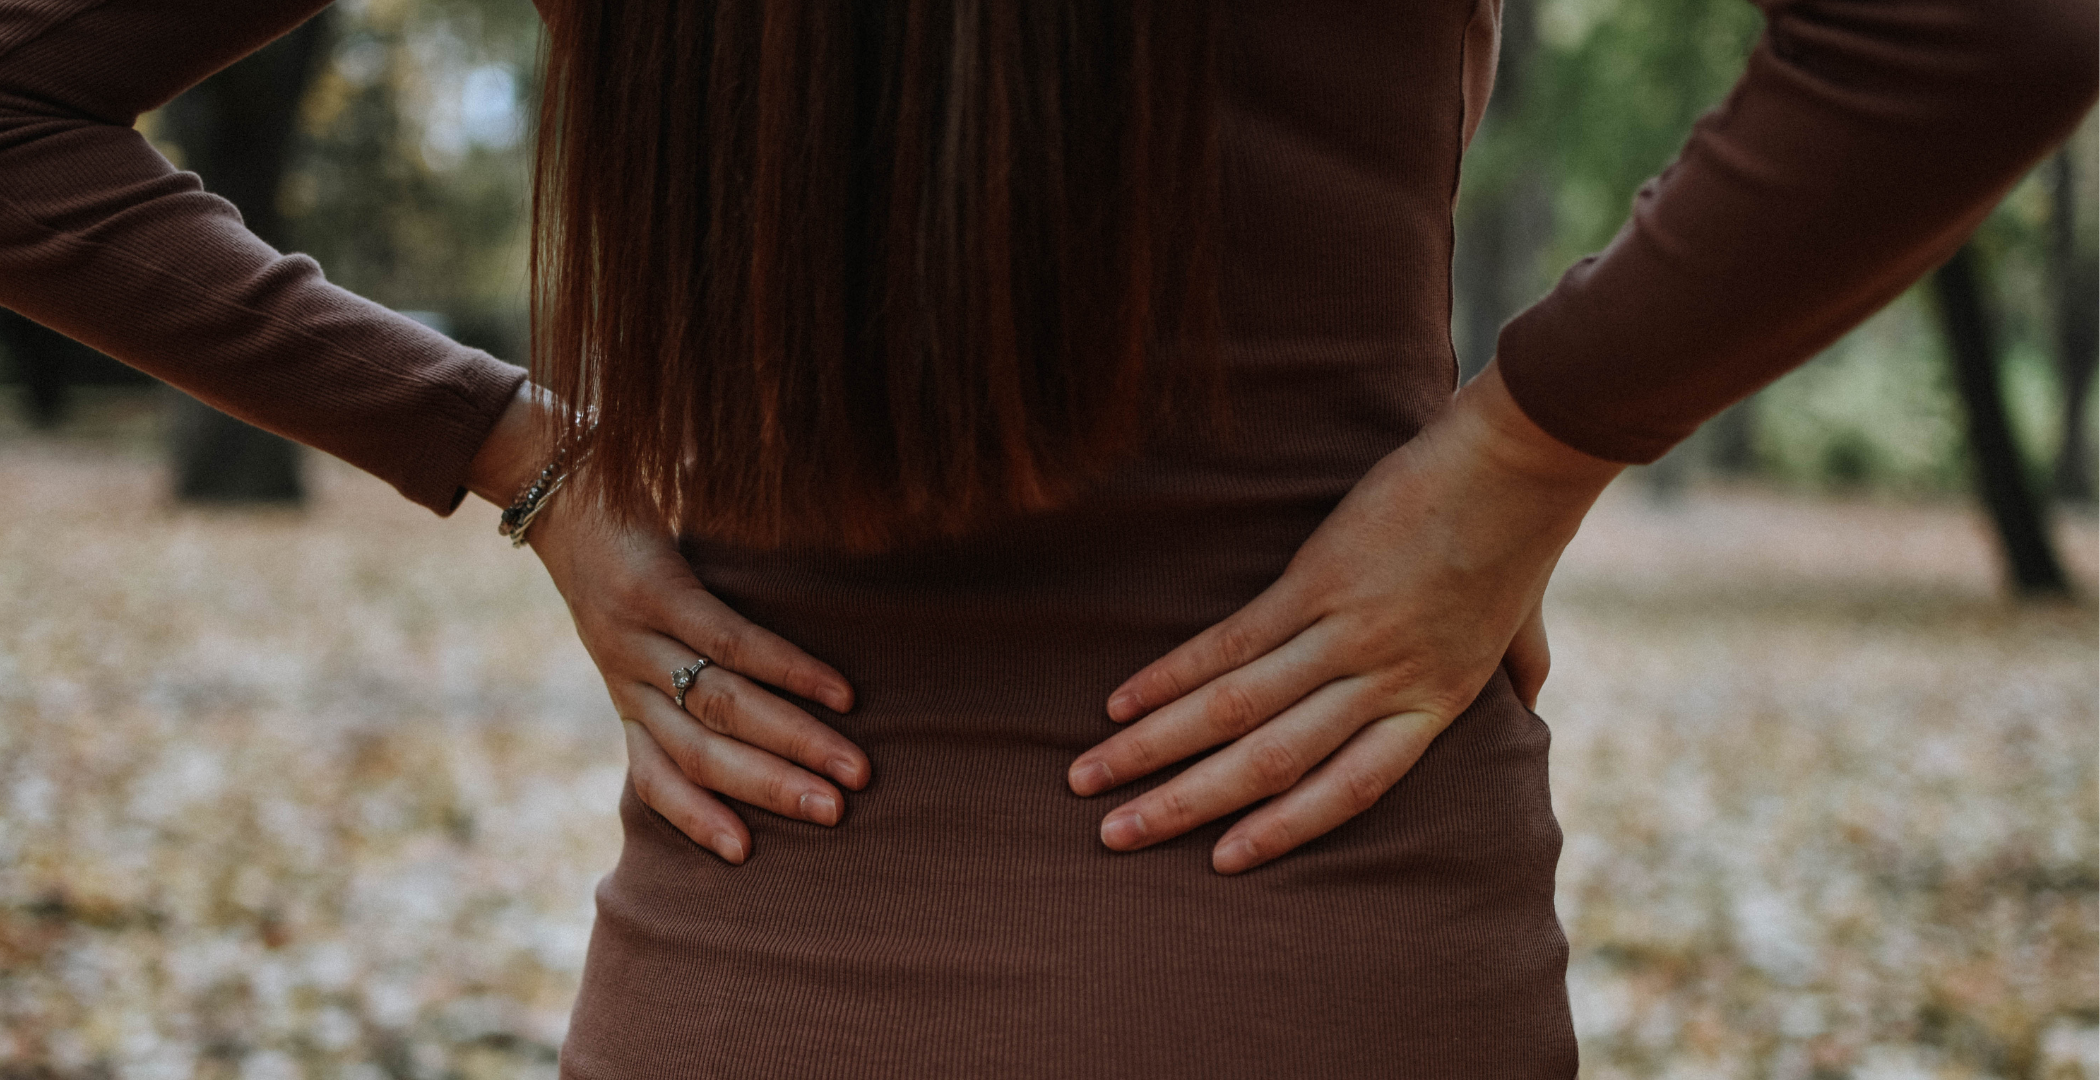 Coping with back pain and its side effects